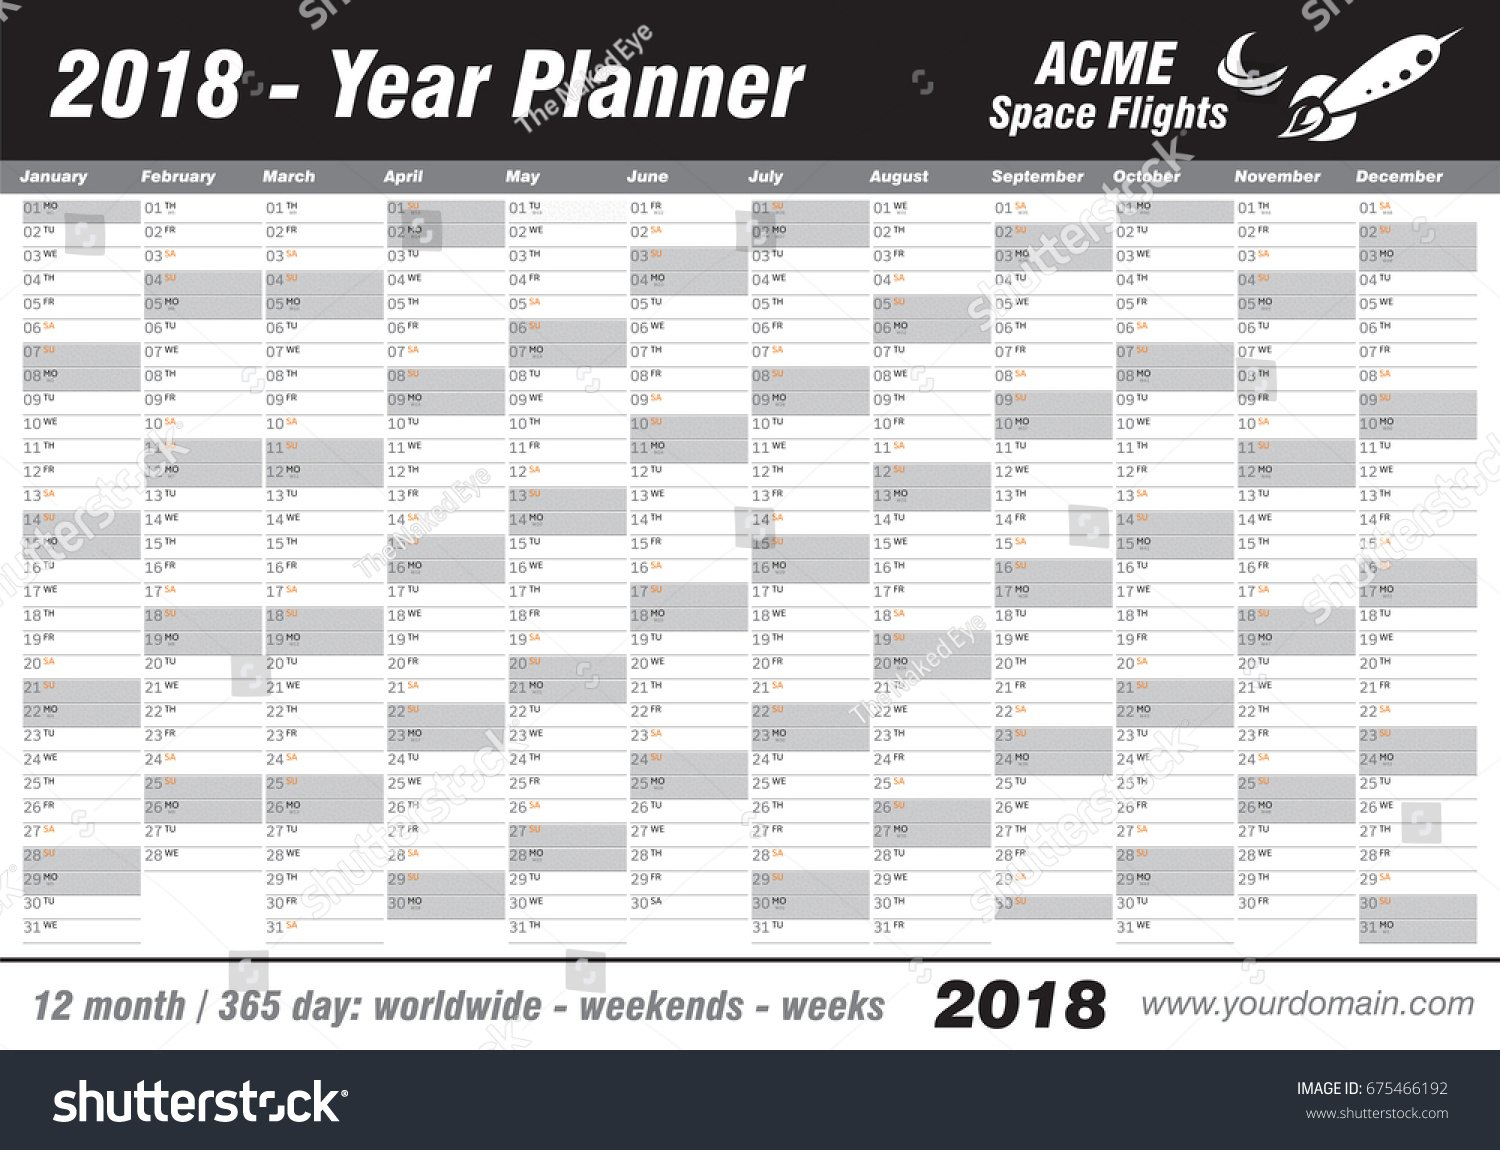 Year Planner Calendar 2018 Vector Annual Stock Vector Calendar With 365 Days Numbered